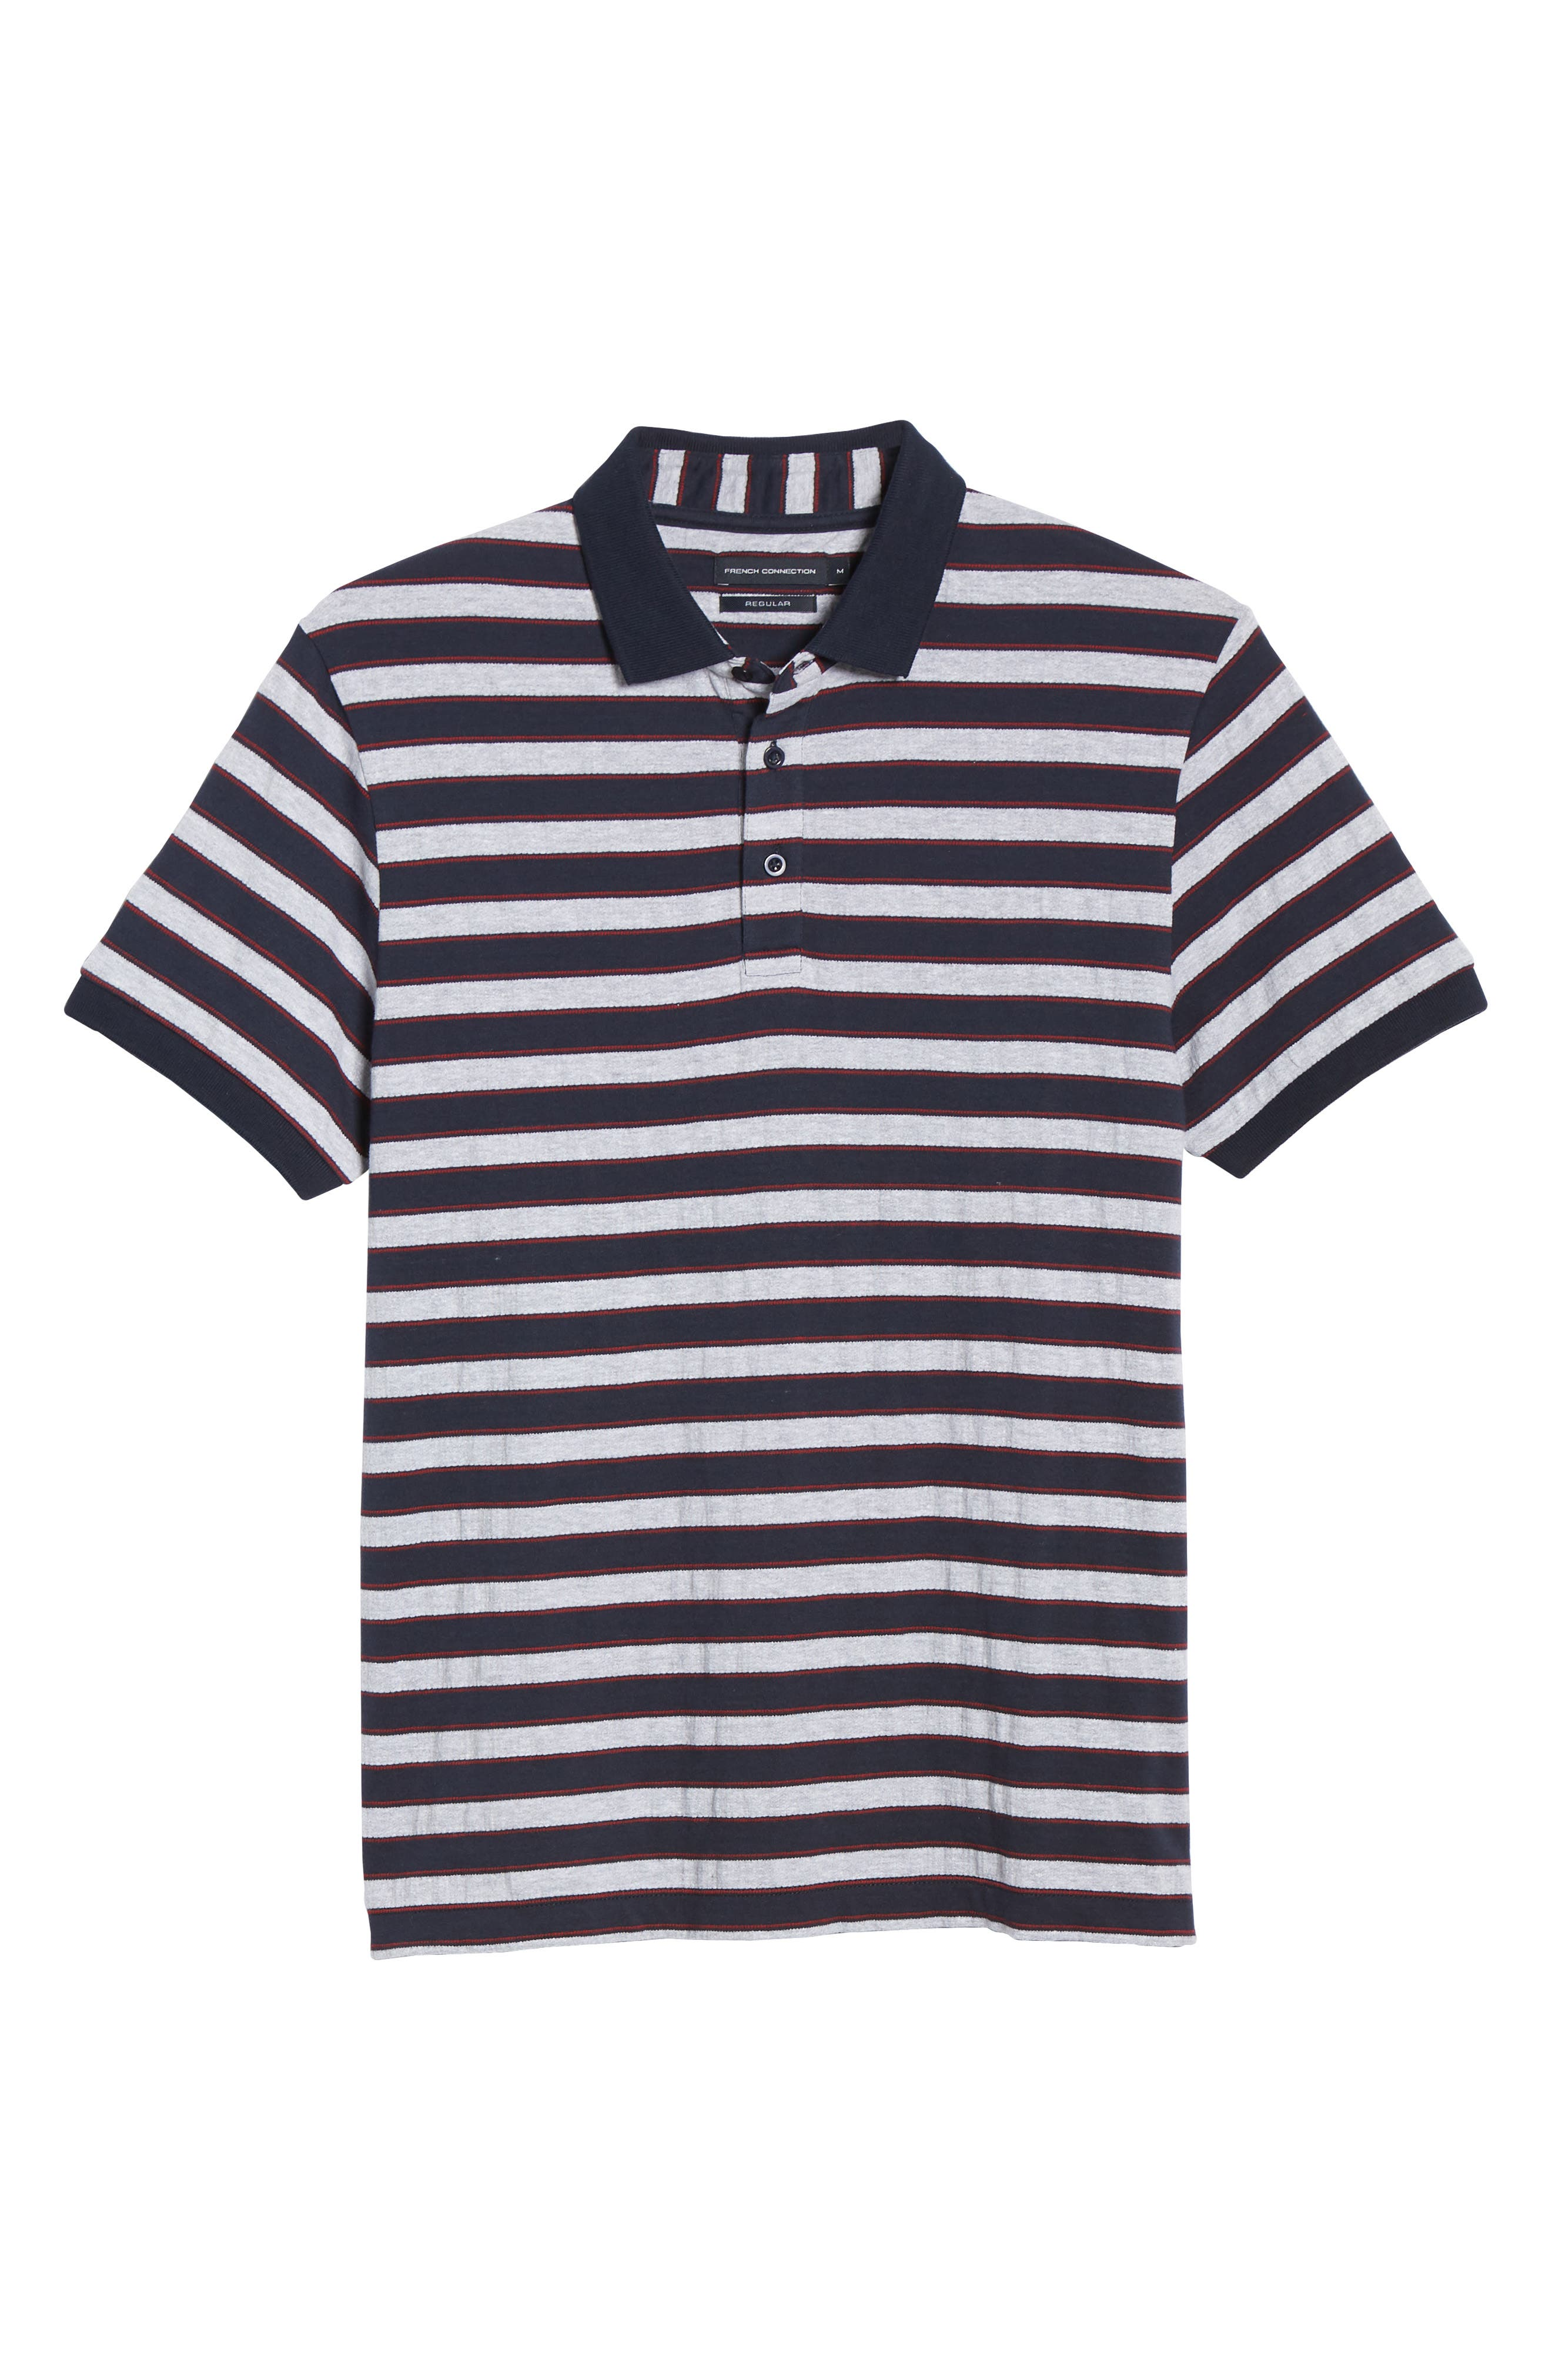 FRENCH CONNECTION, Stripe Regular Fit Mélange Polo, Alternate thumbnail 6, color, UTILITY BLUE